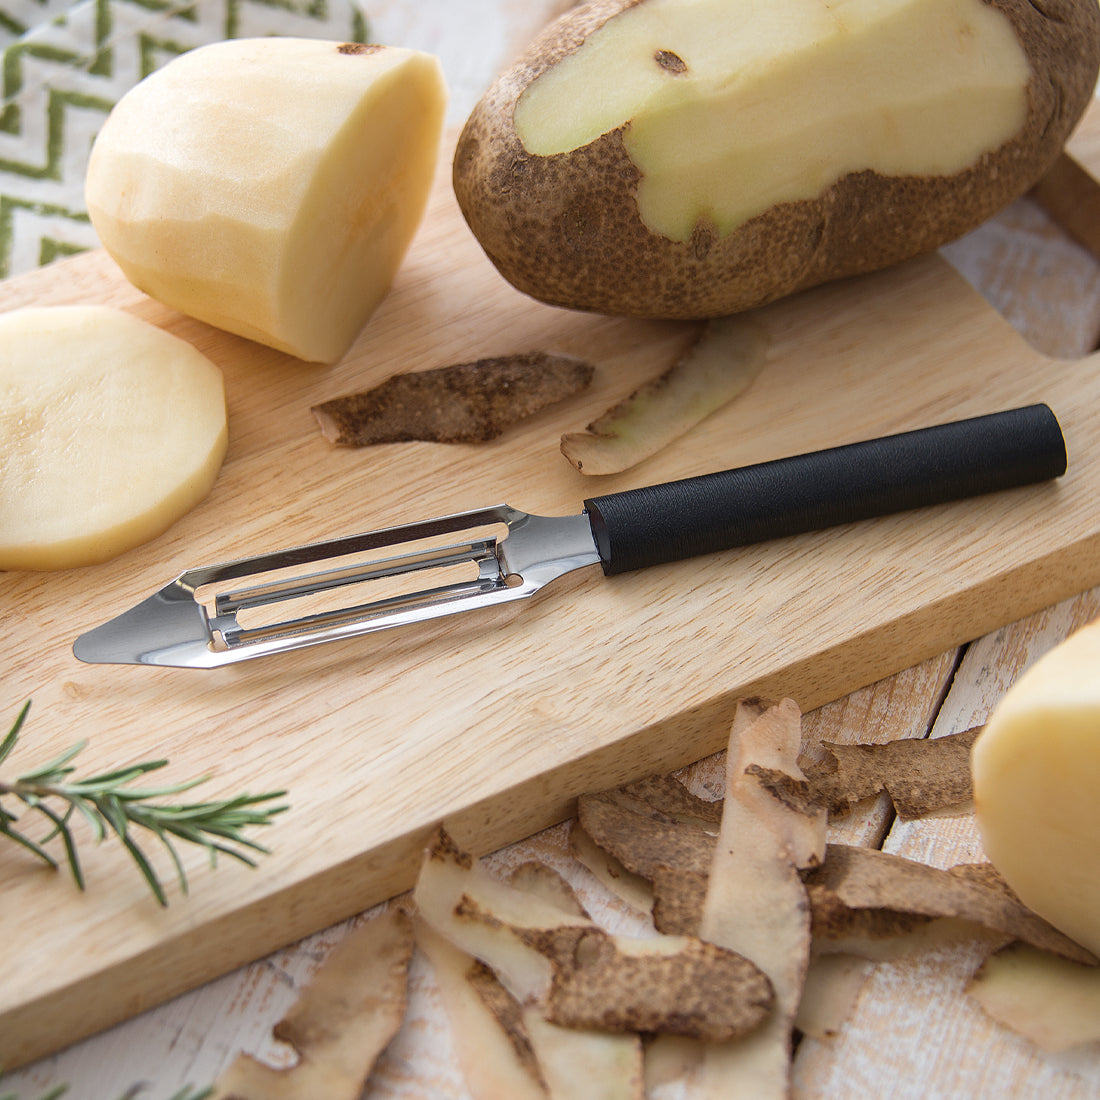 Rada Cutlery Vegetable Peeler with black handle on cutting board with potatoes.